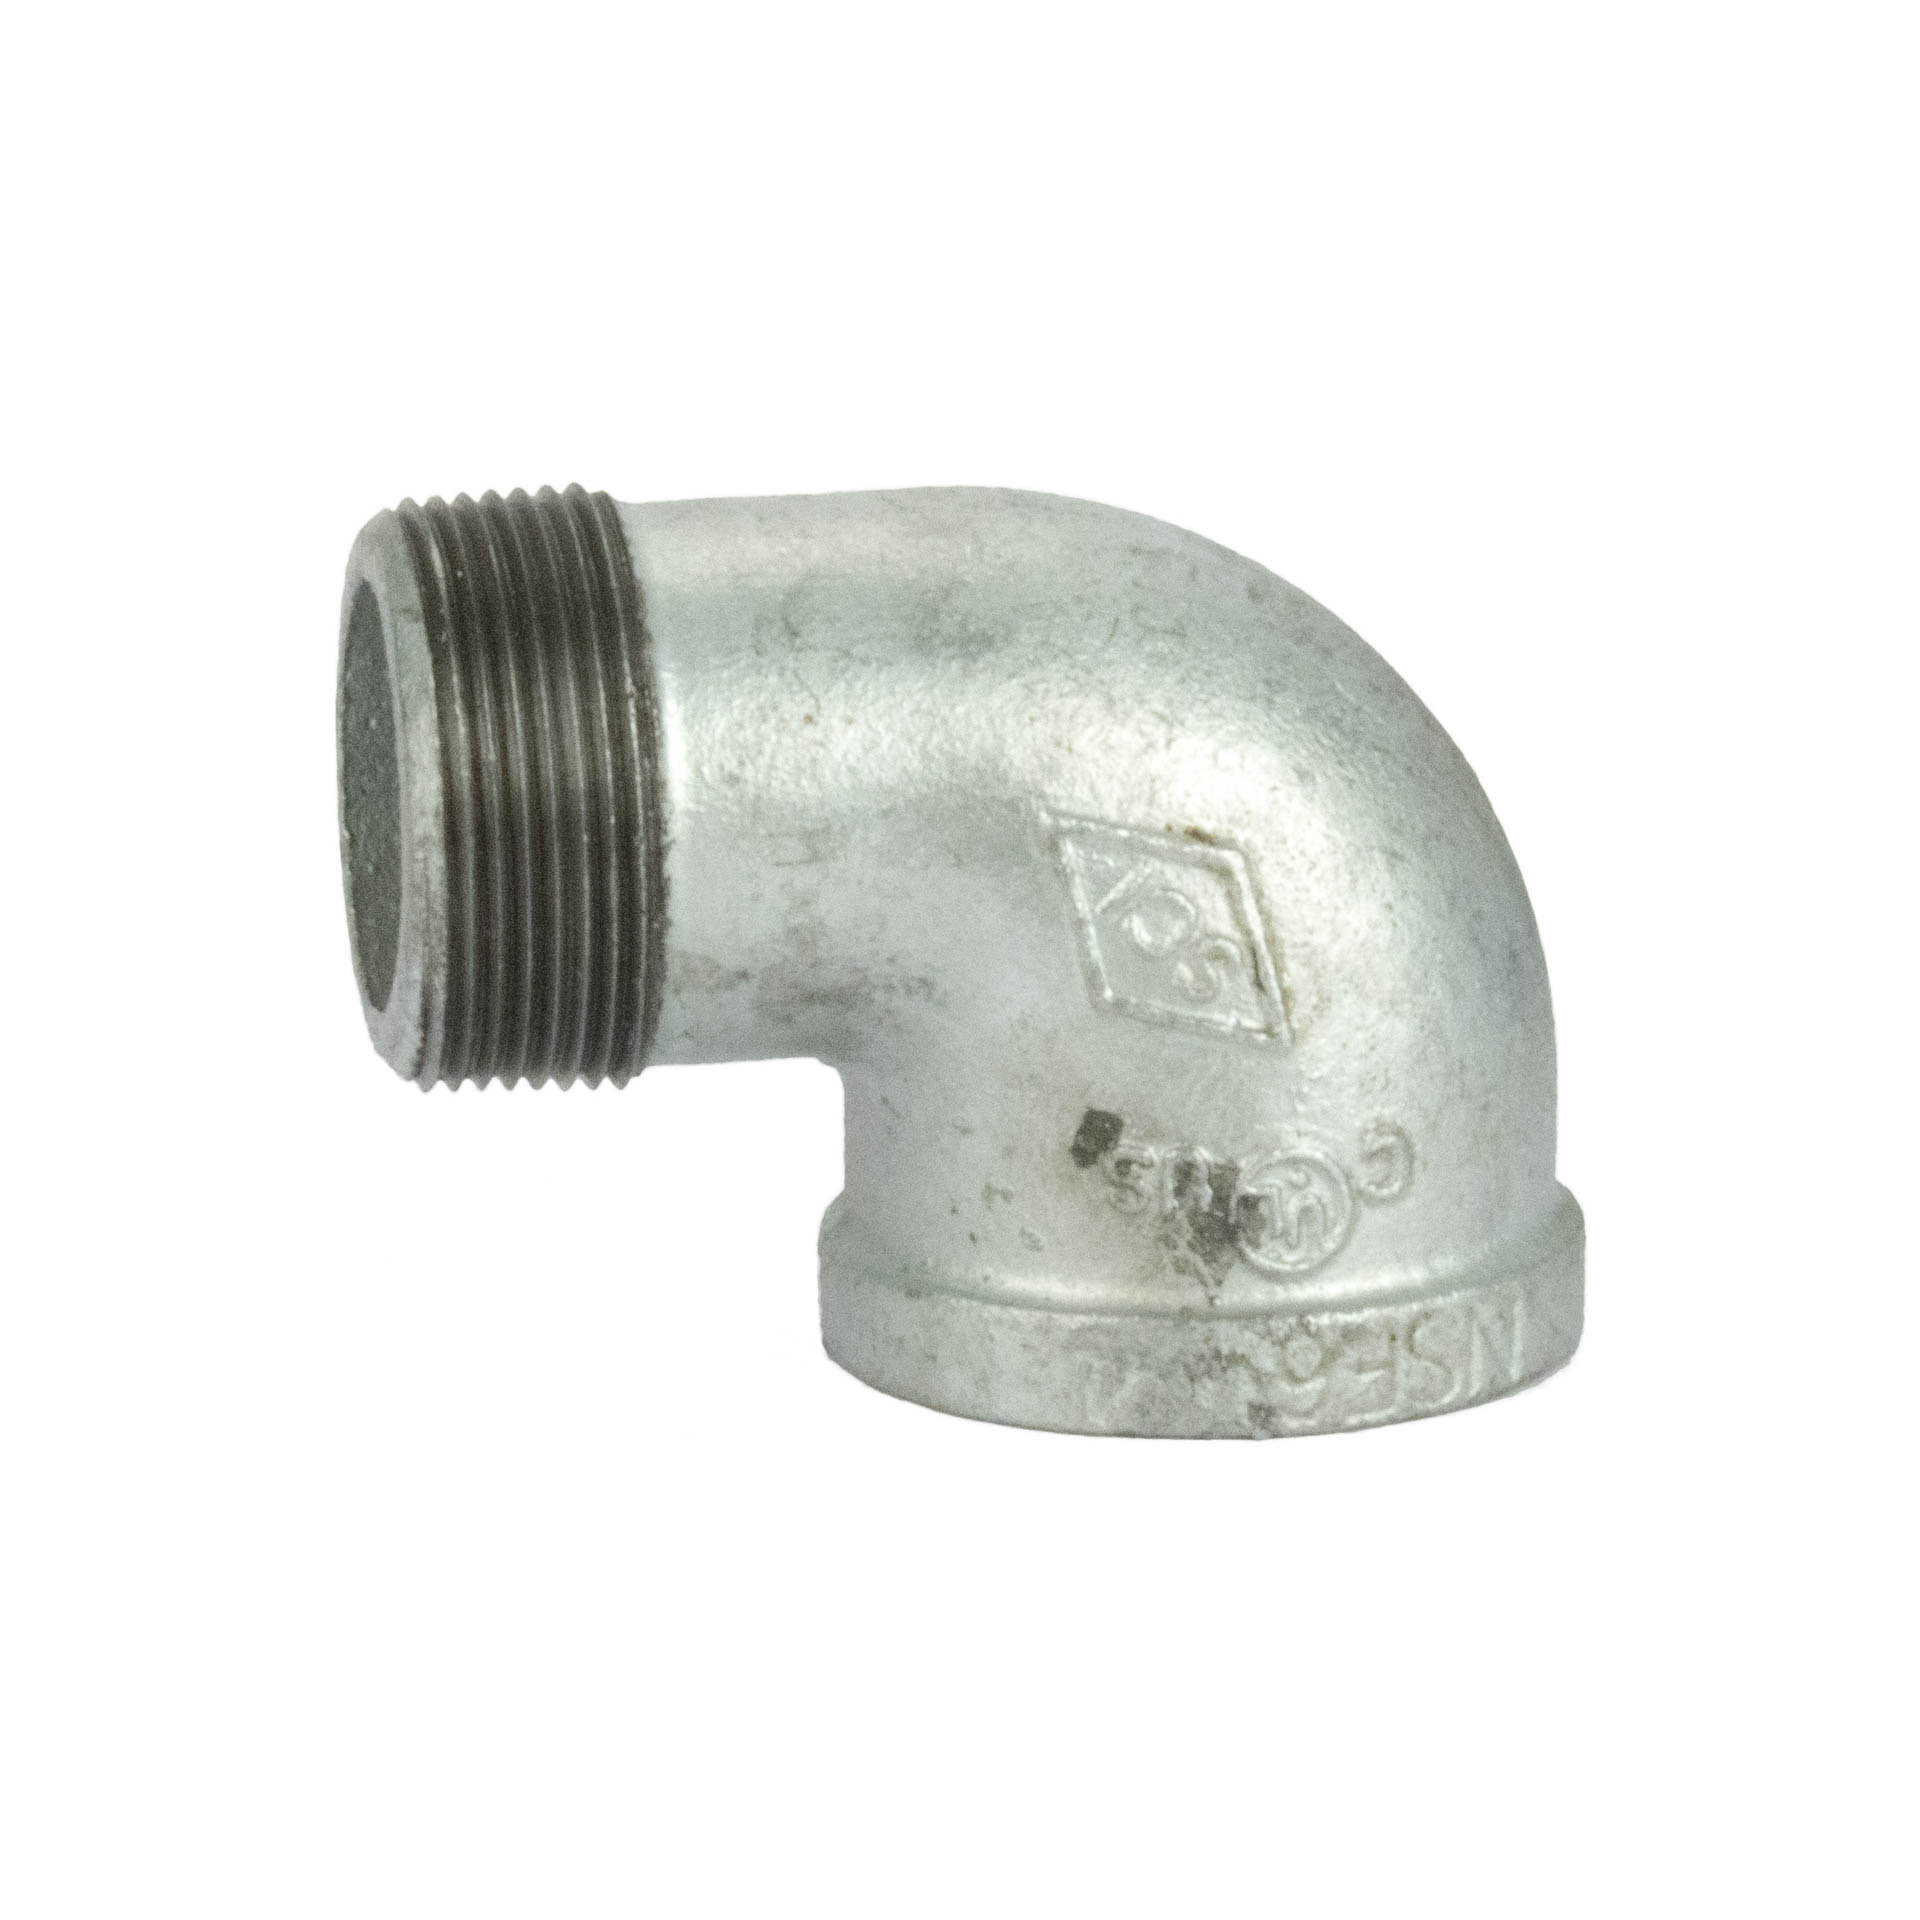 90° Threaded Street Elbow for sale